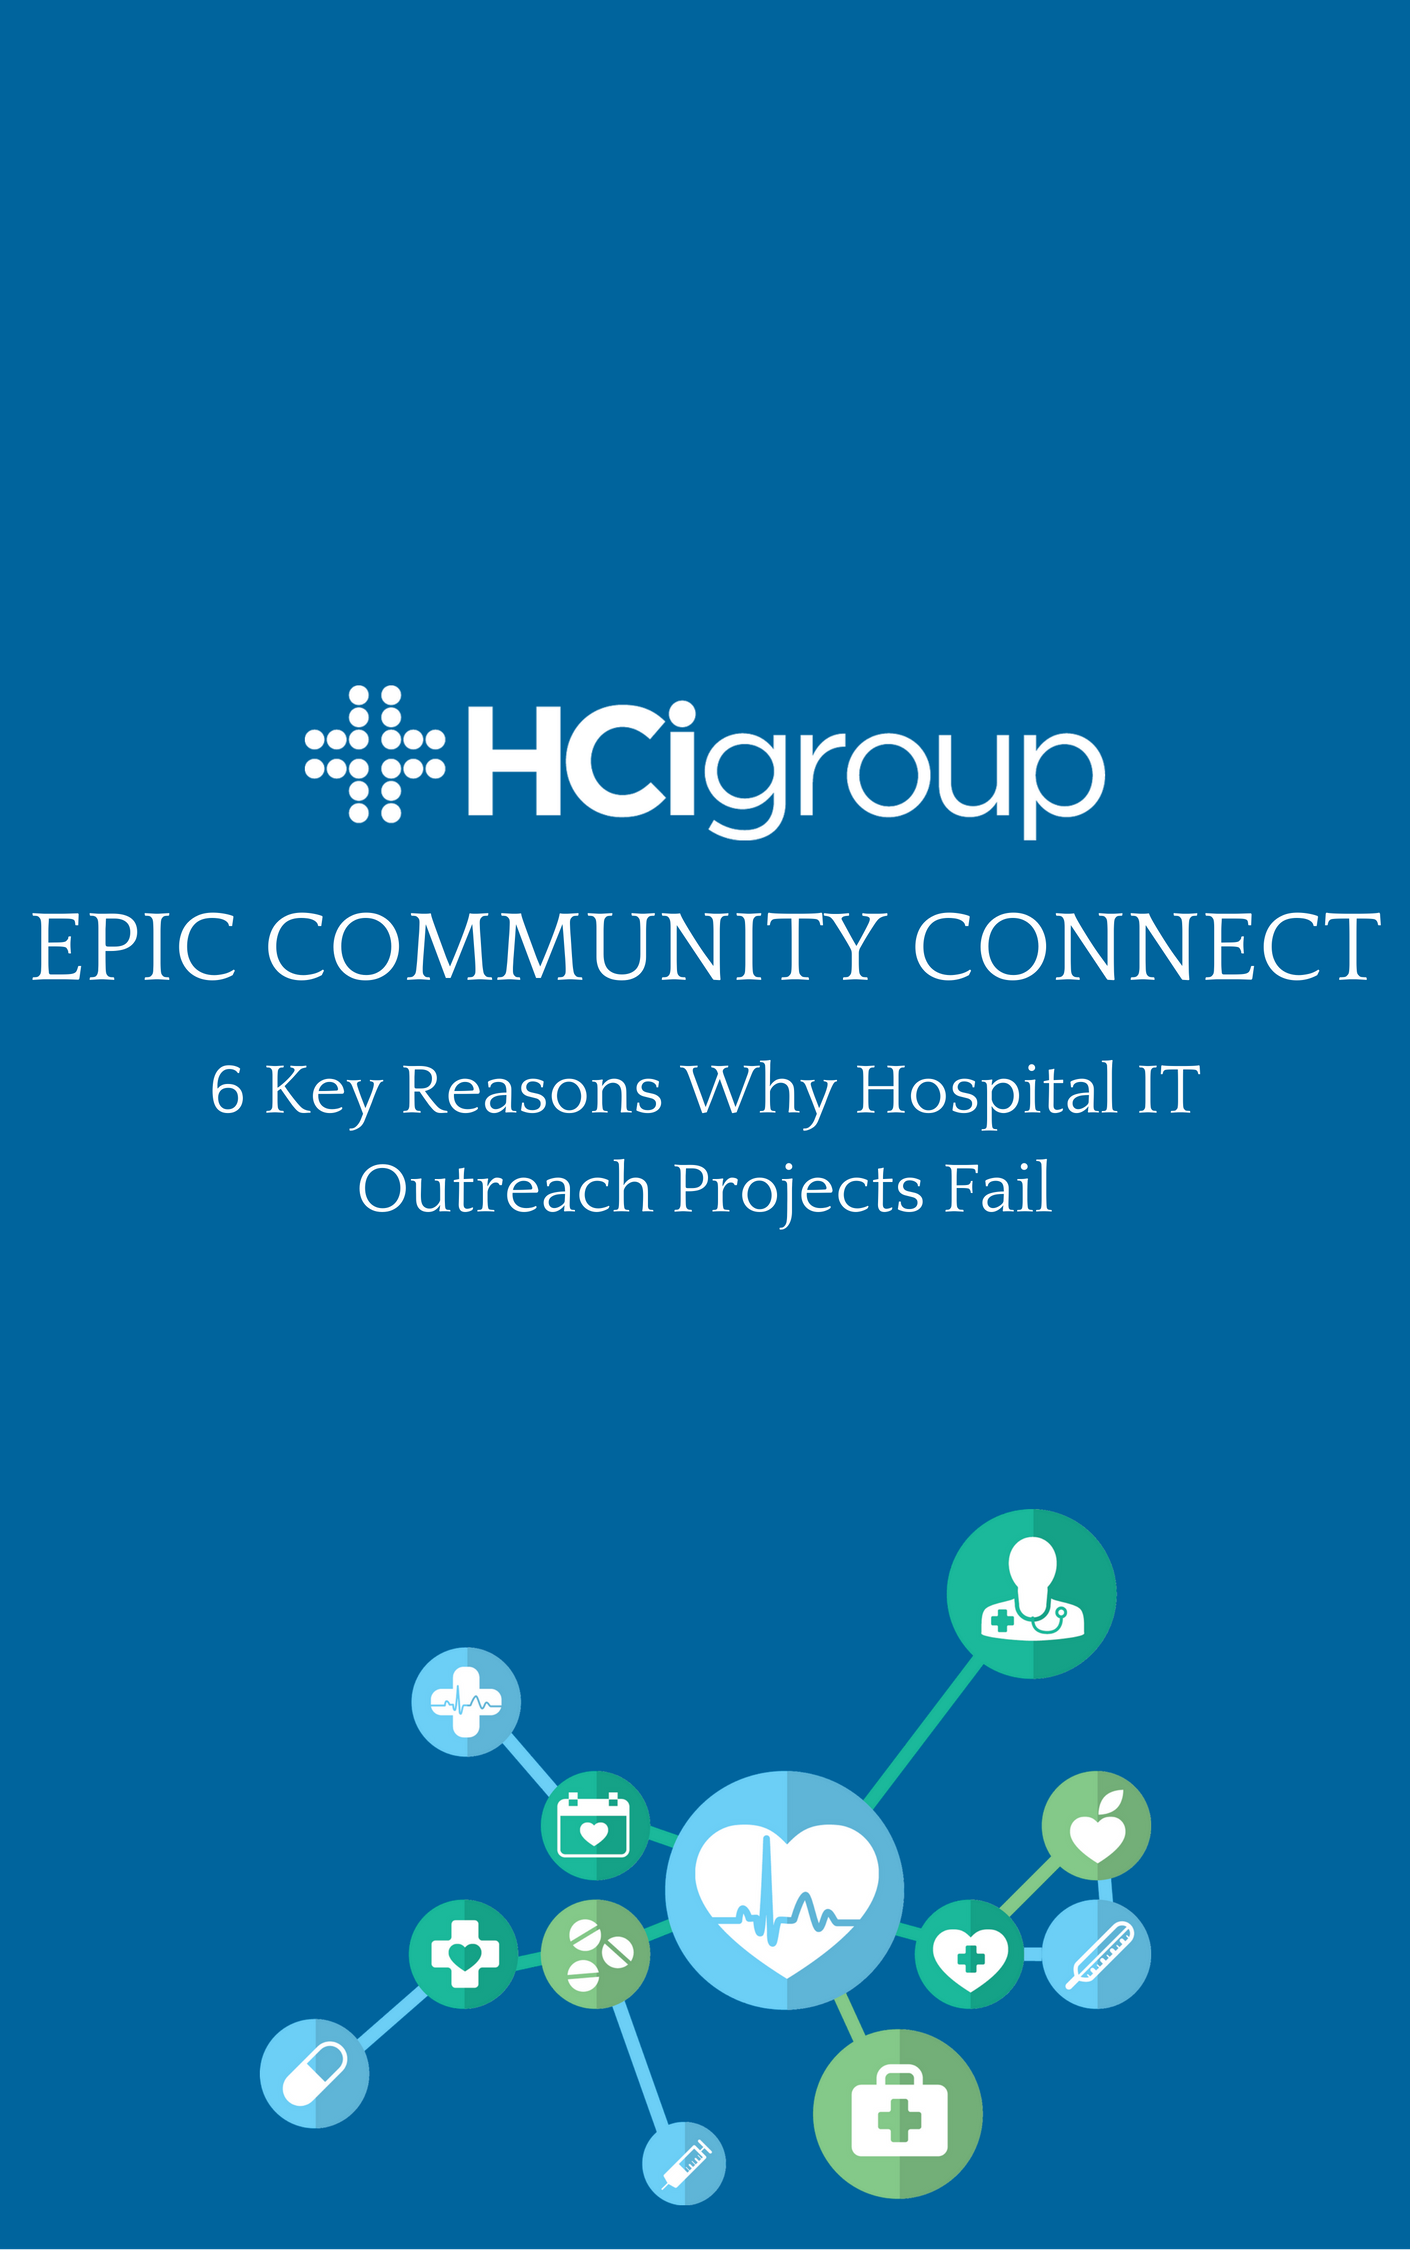 6 Key Reasons Why Hospital IT Outreach Projects Fail